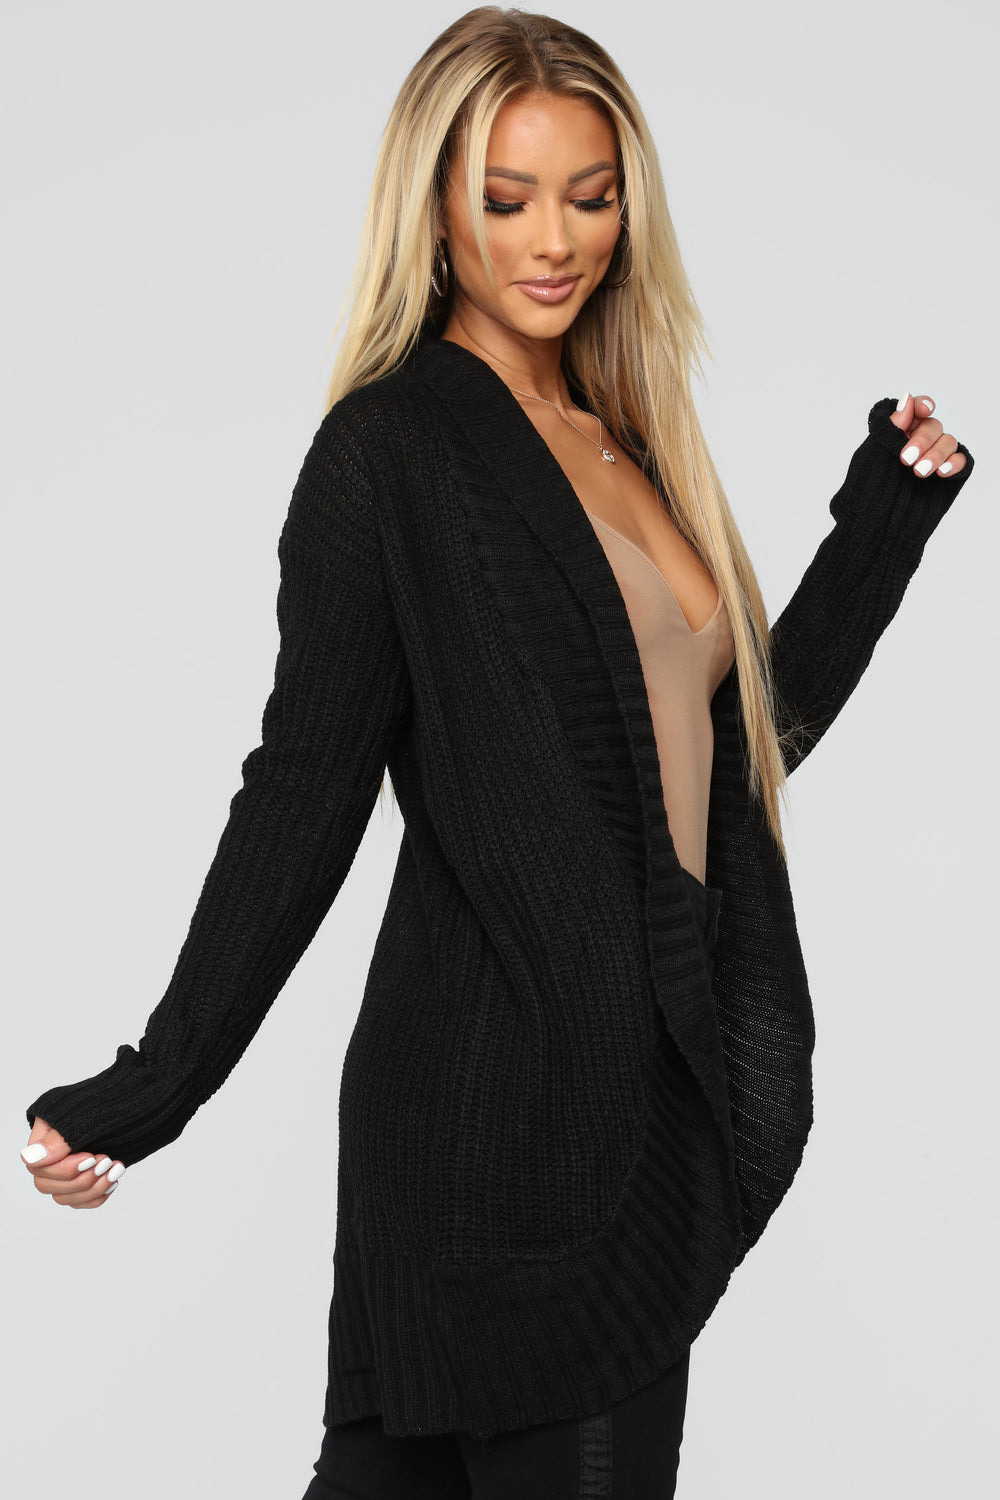 Kris Shawl Collar Cardigan - Black